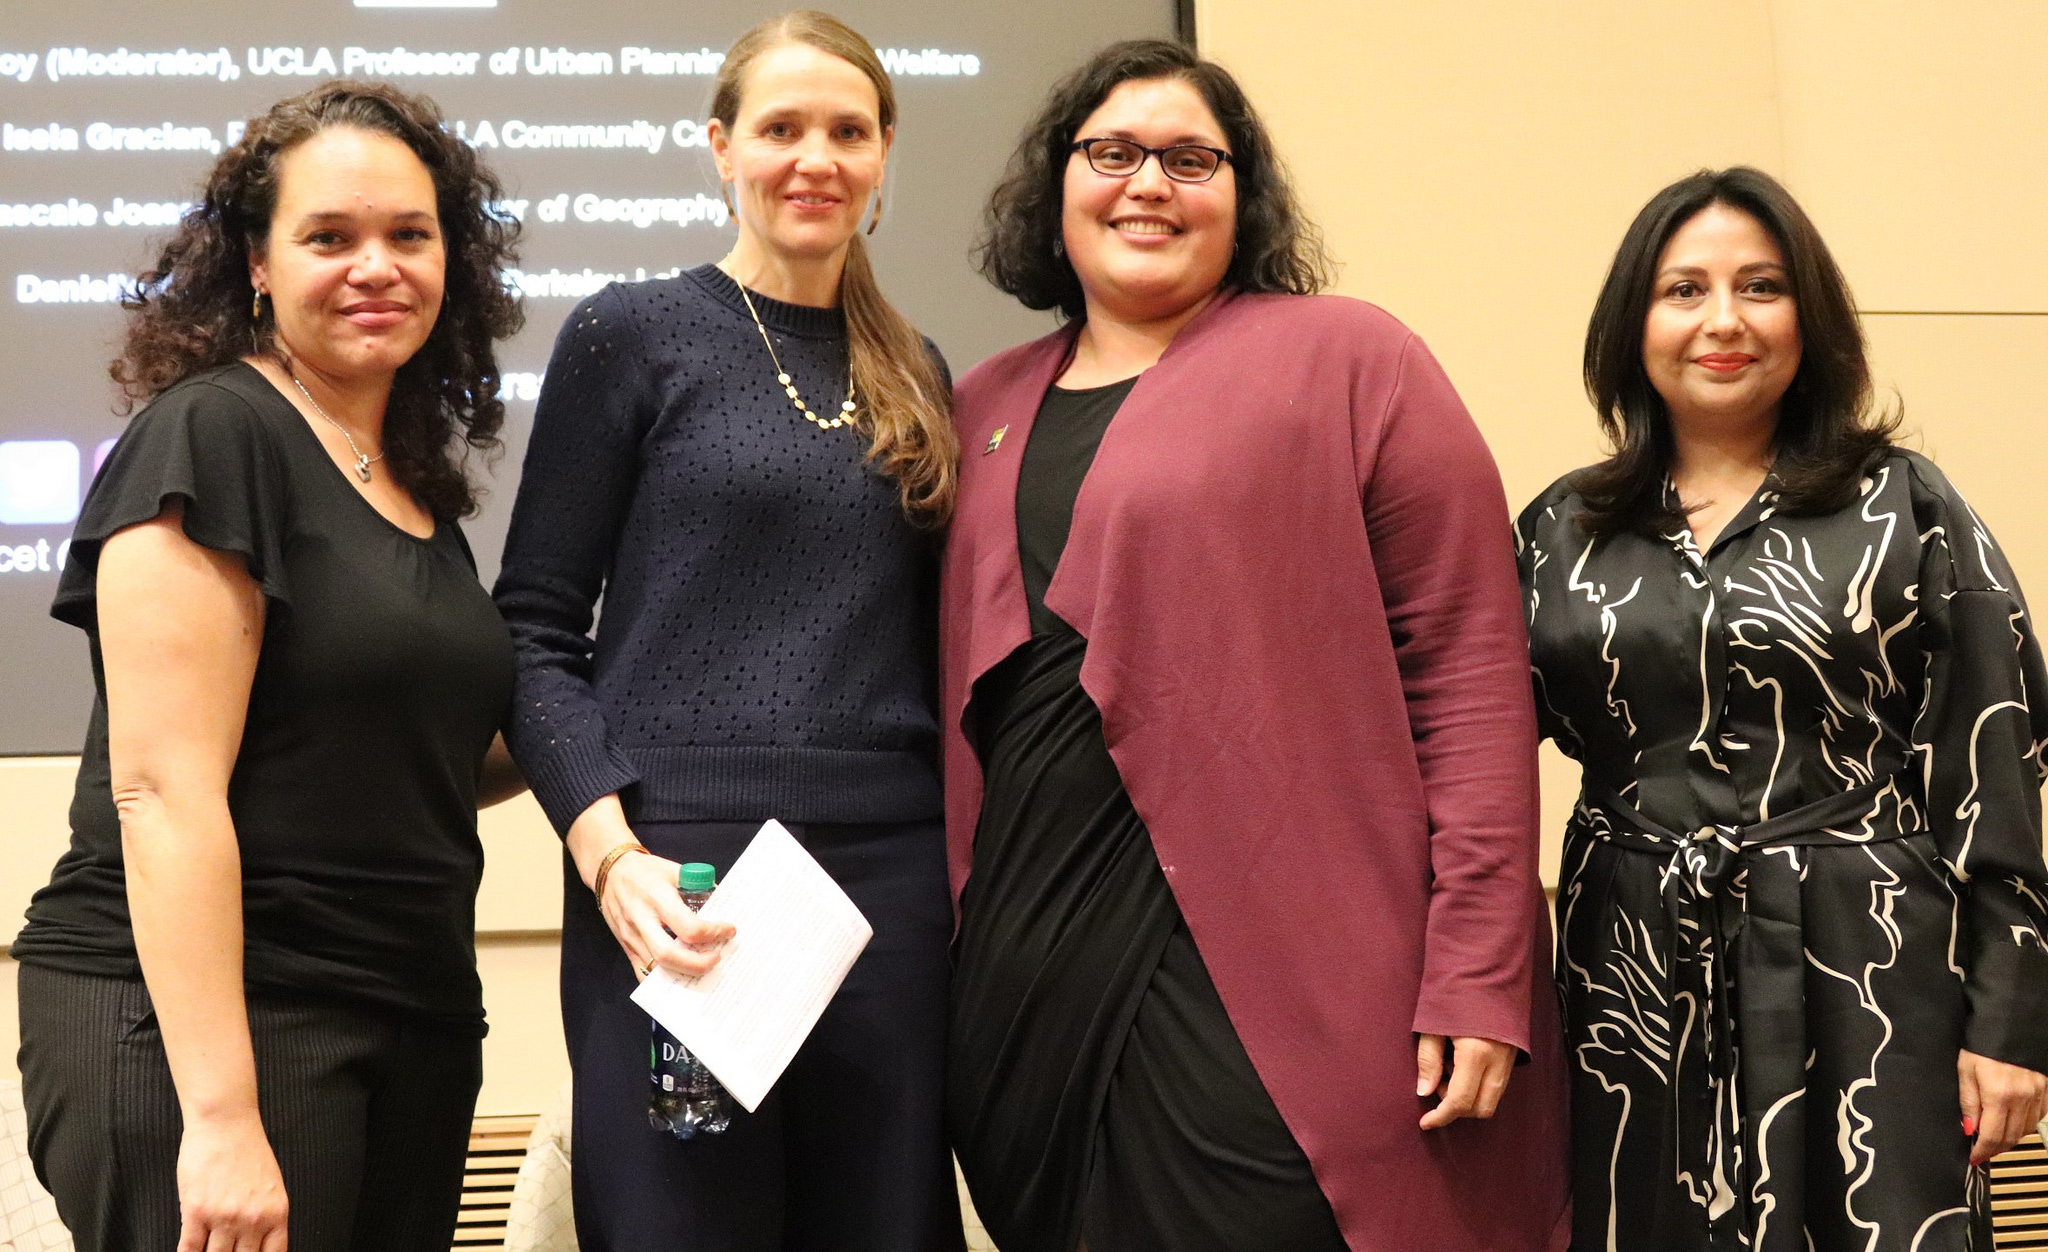 Danielle Mahones (Director, Leadership Development Program, UC Berkeley Labor Center), Pascale Joassart-Marcelli, Isela Gracian and Ananya Roy participate in a panel discussion after the premiere screening of CITY RISING: THE INFORMAL ECONOMY